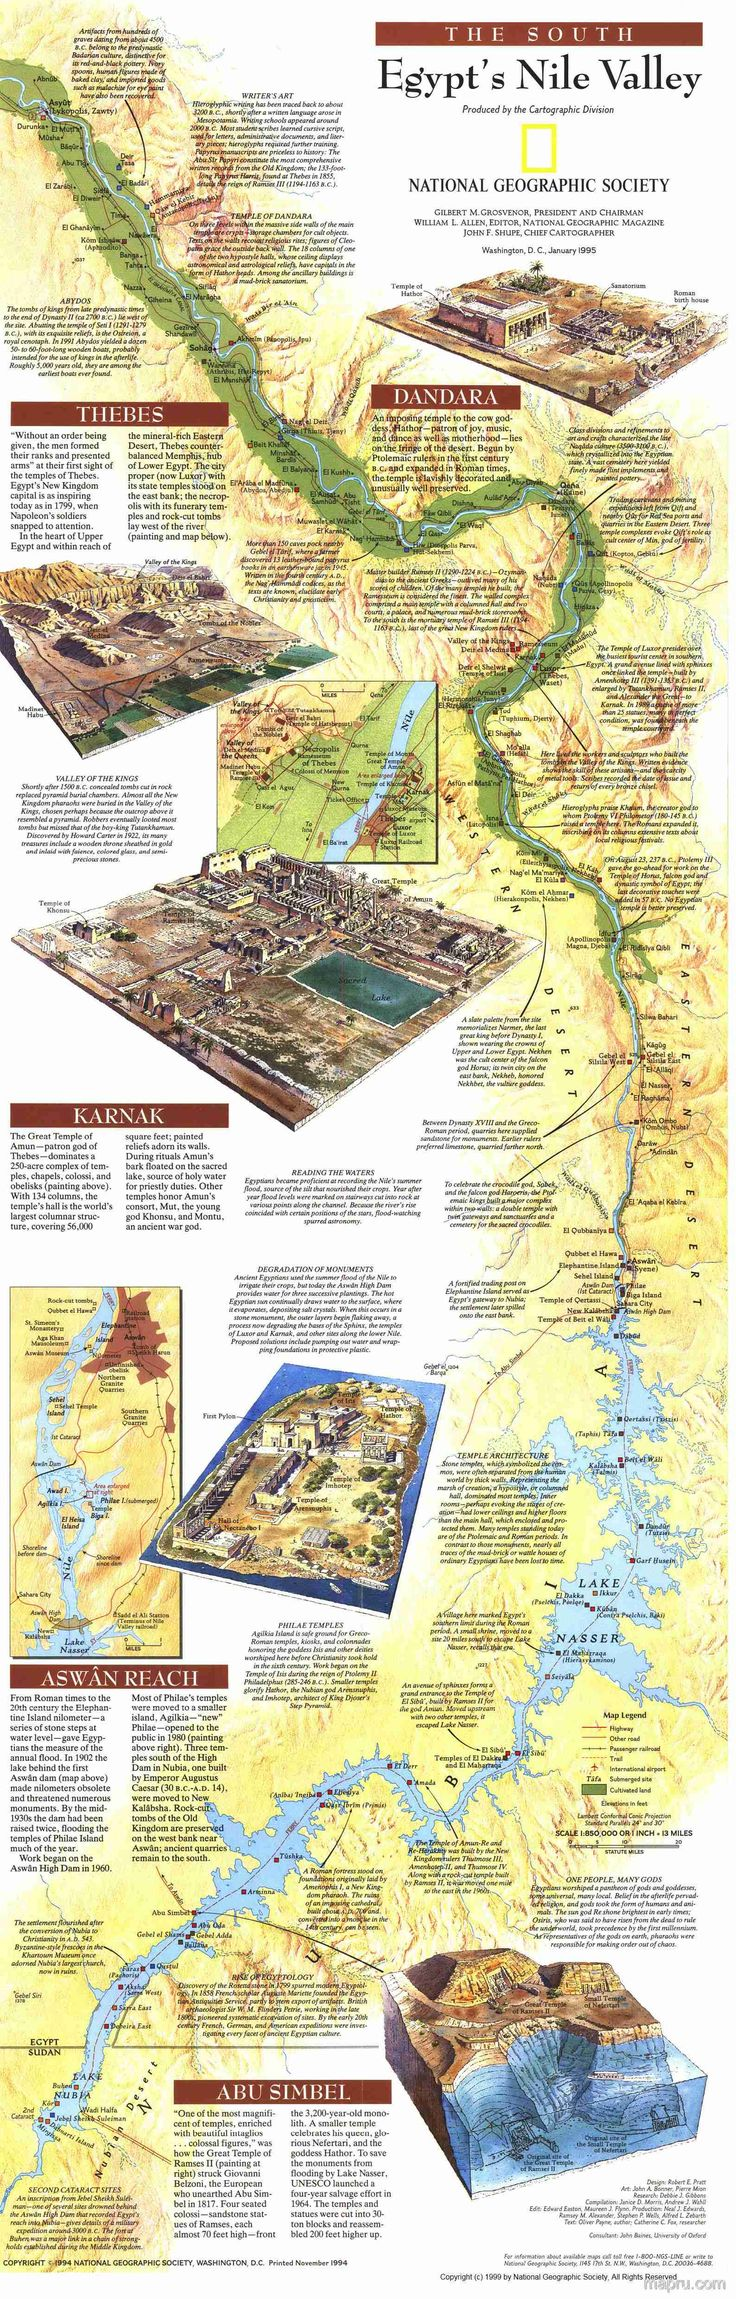 Best Egypt Images On Pinterest Ancient Egypt History And - Map of egypt national geographic